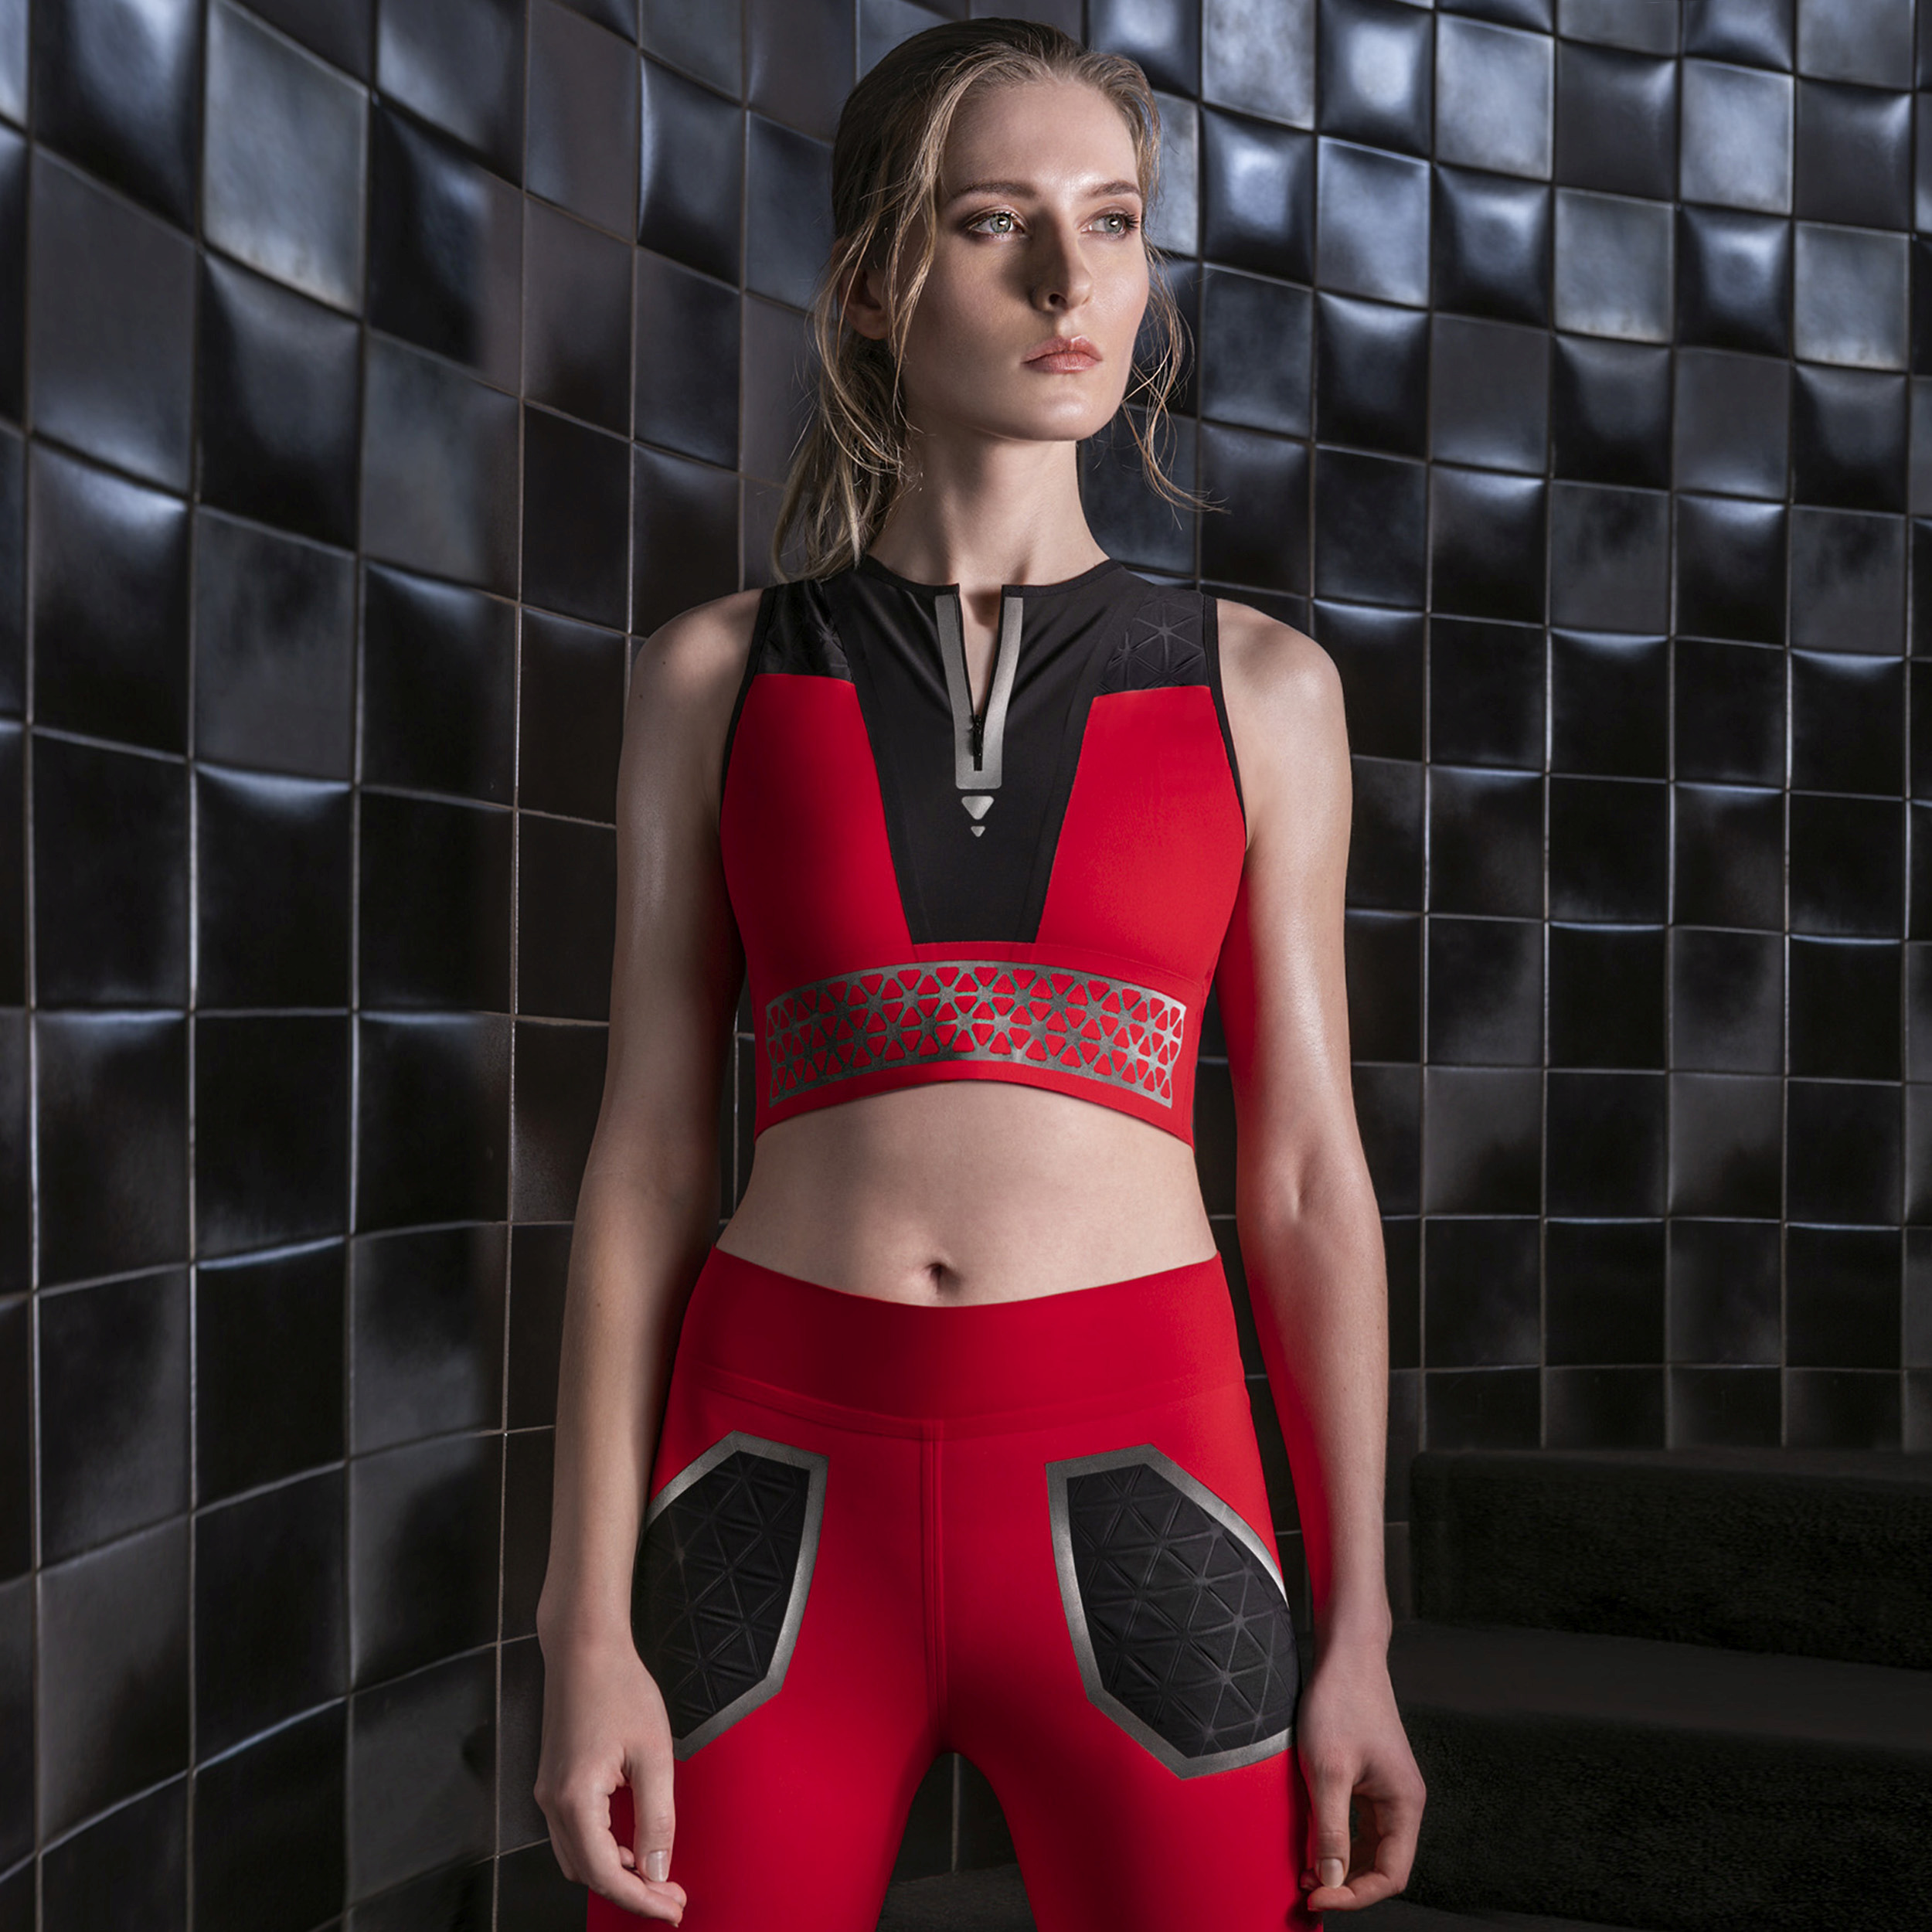 Top and leggings in Sensitive Fabrics certified LYCRA SPORT Technology with seamless construction, Dream Reflective decorative motifs and laser cuts by FRAMIS ITALIA. © Eurojersey.